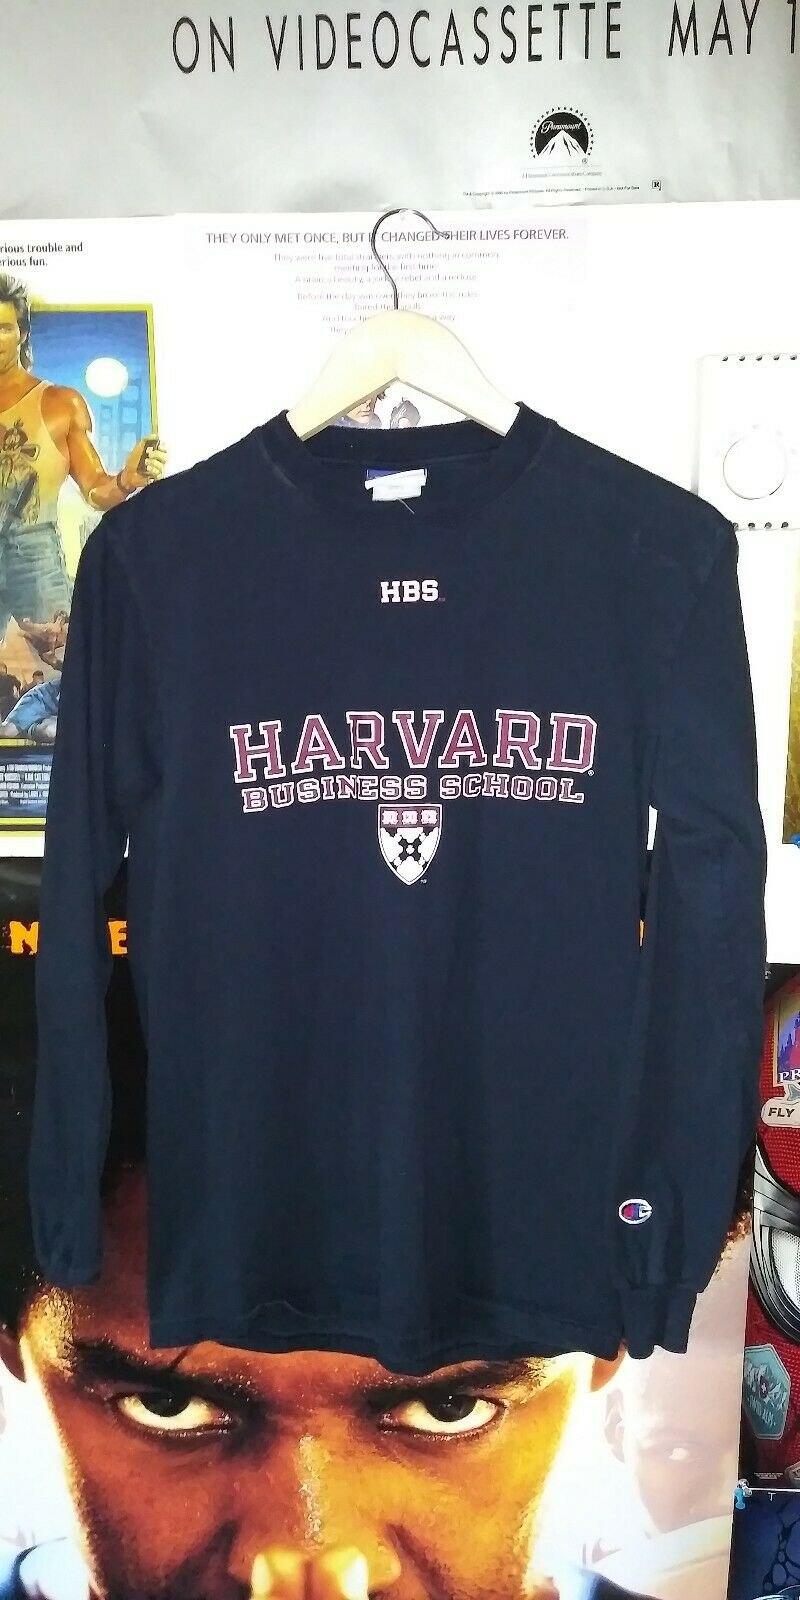 Vtg Champion Brand Harvard University Business School Long Sleeve Shirt Small 1